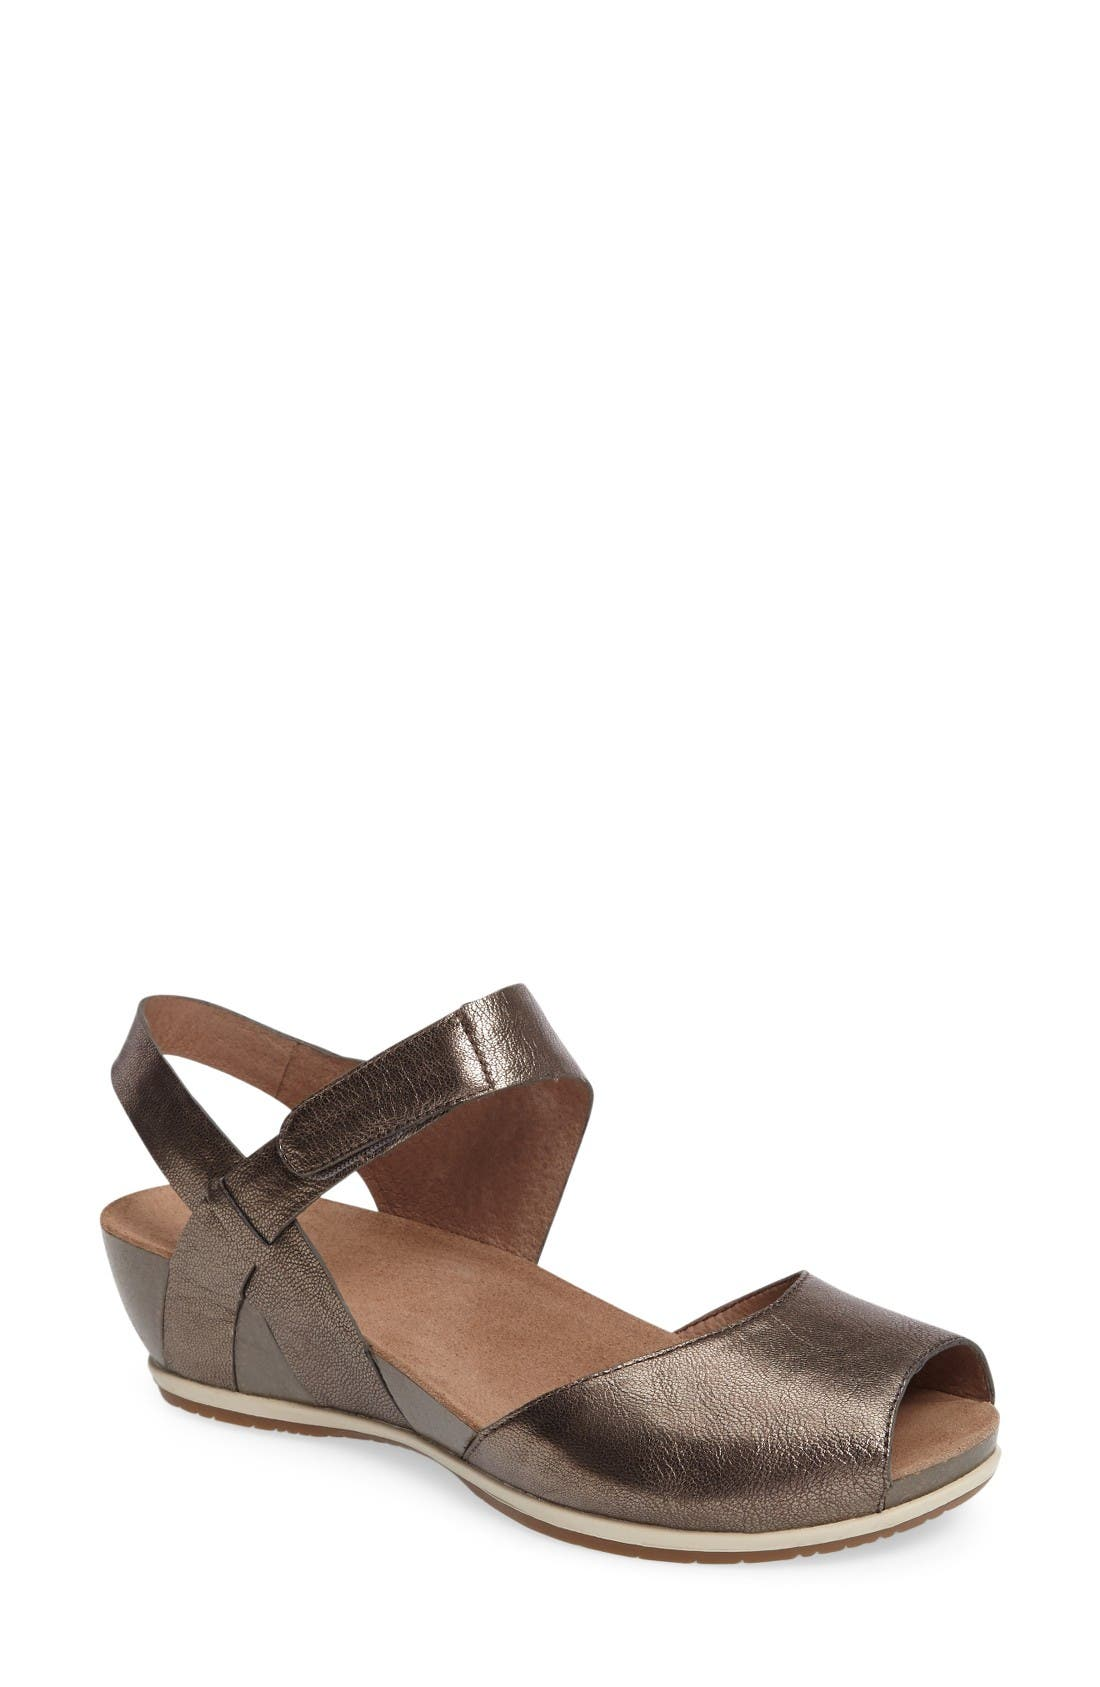 Vera Sandal,                         Main,                         color, Pewter Leather